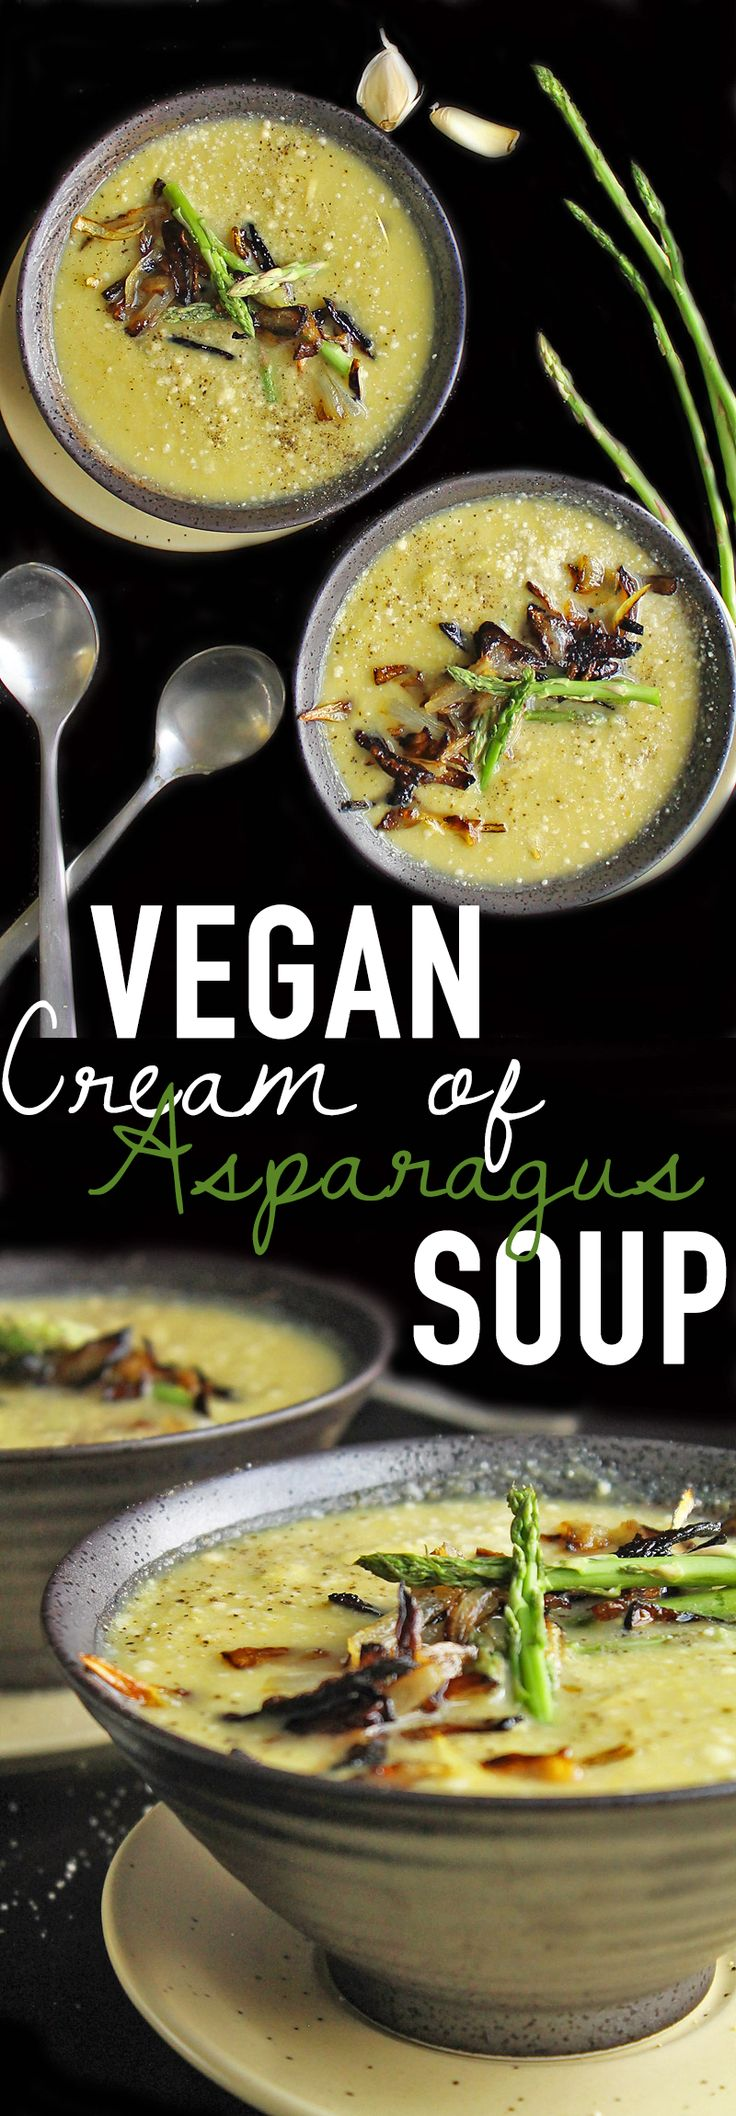 This vegan Cream of Asparagus Soup has everything you want: rich, creamy, and full of flavor. Bonus: it's filled with hidden vegetables for a super healthy, delicious meal!